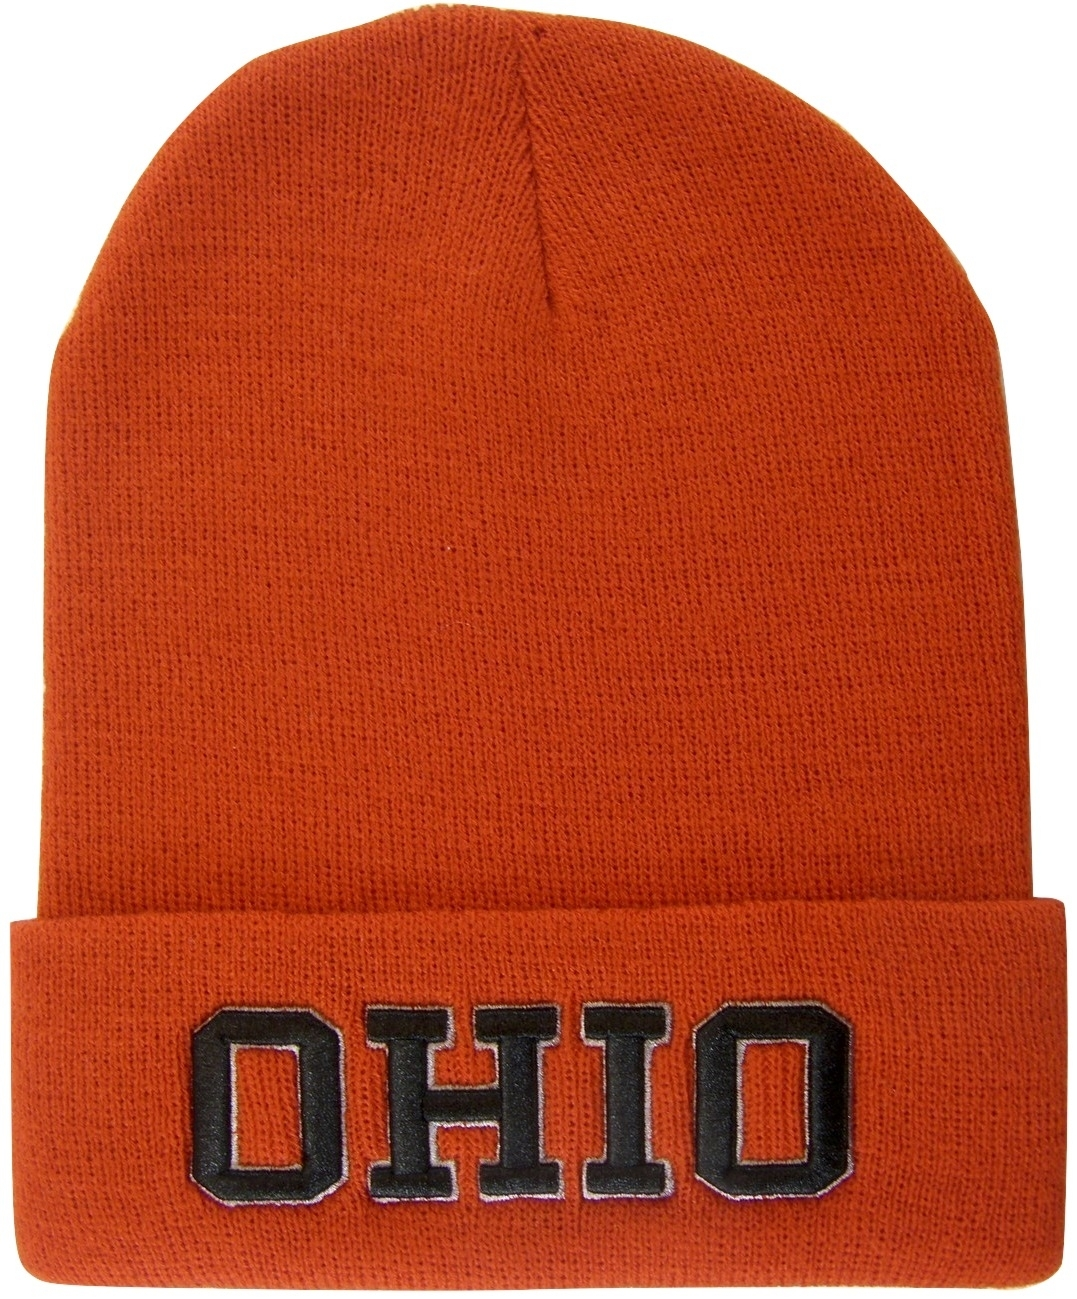 Red Ohio state beanie hat with black script